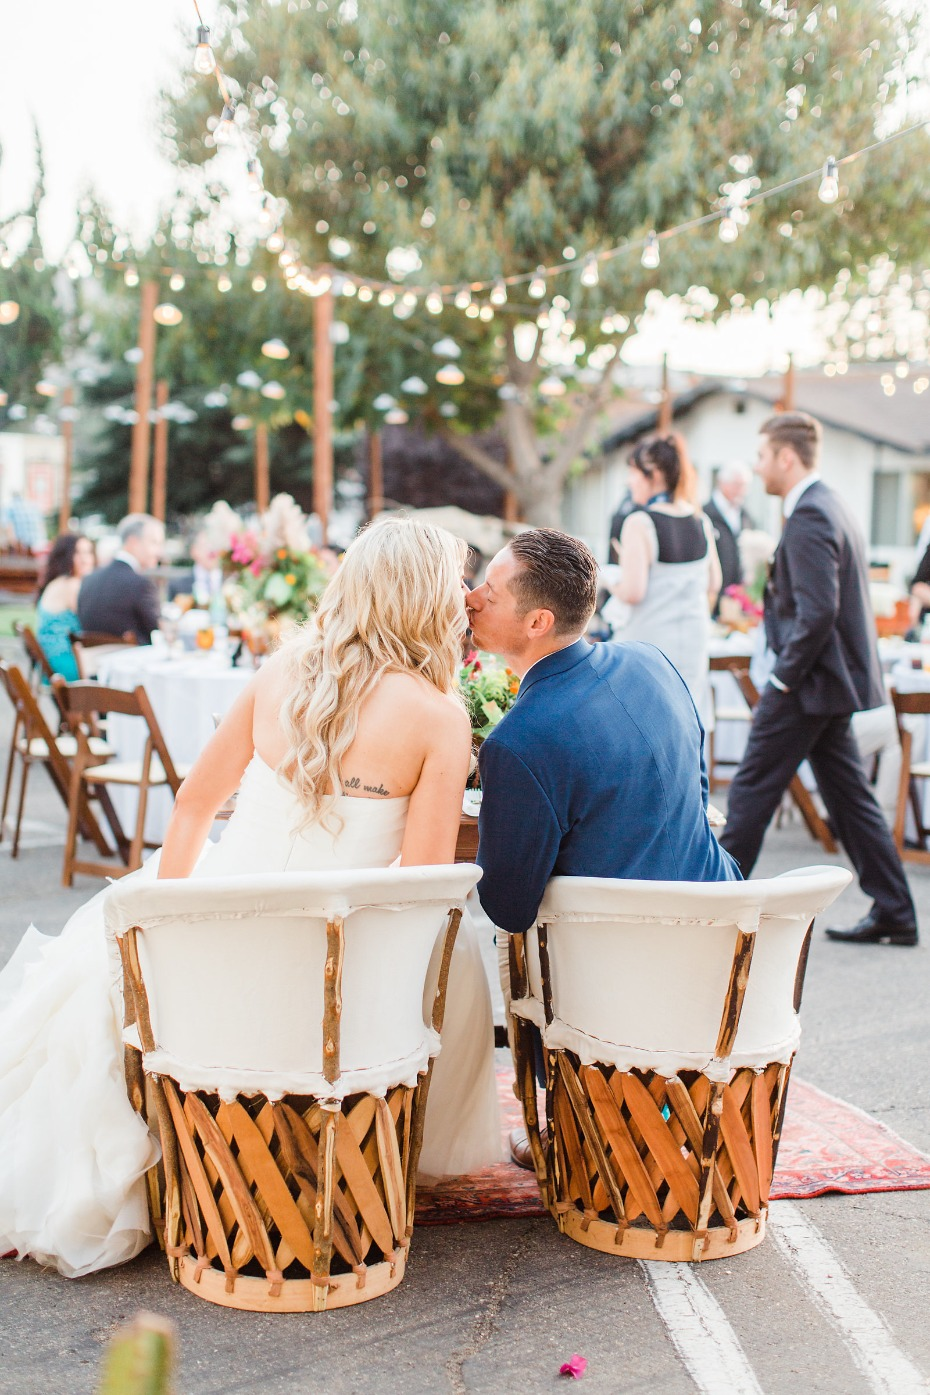 Relaxed outdoor wedding at the Alamo Motel